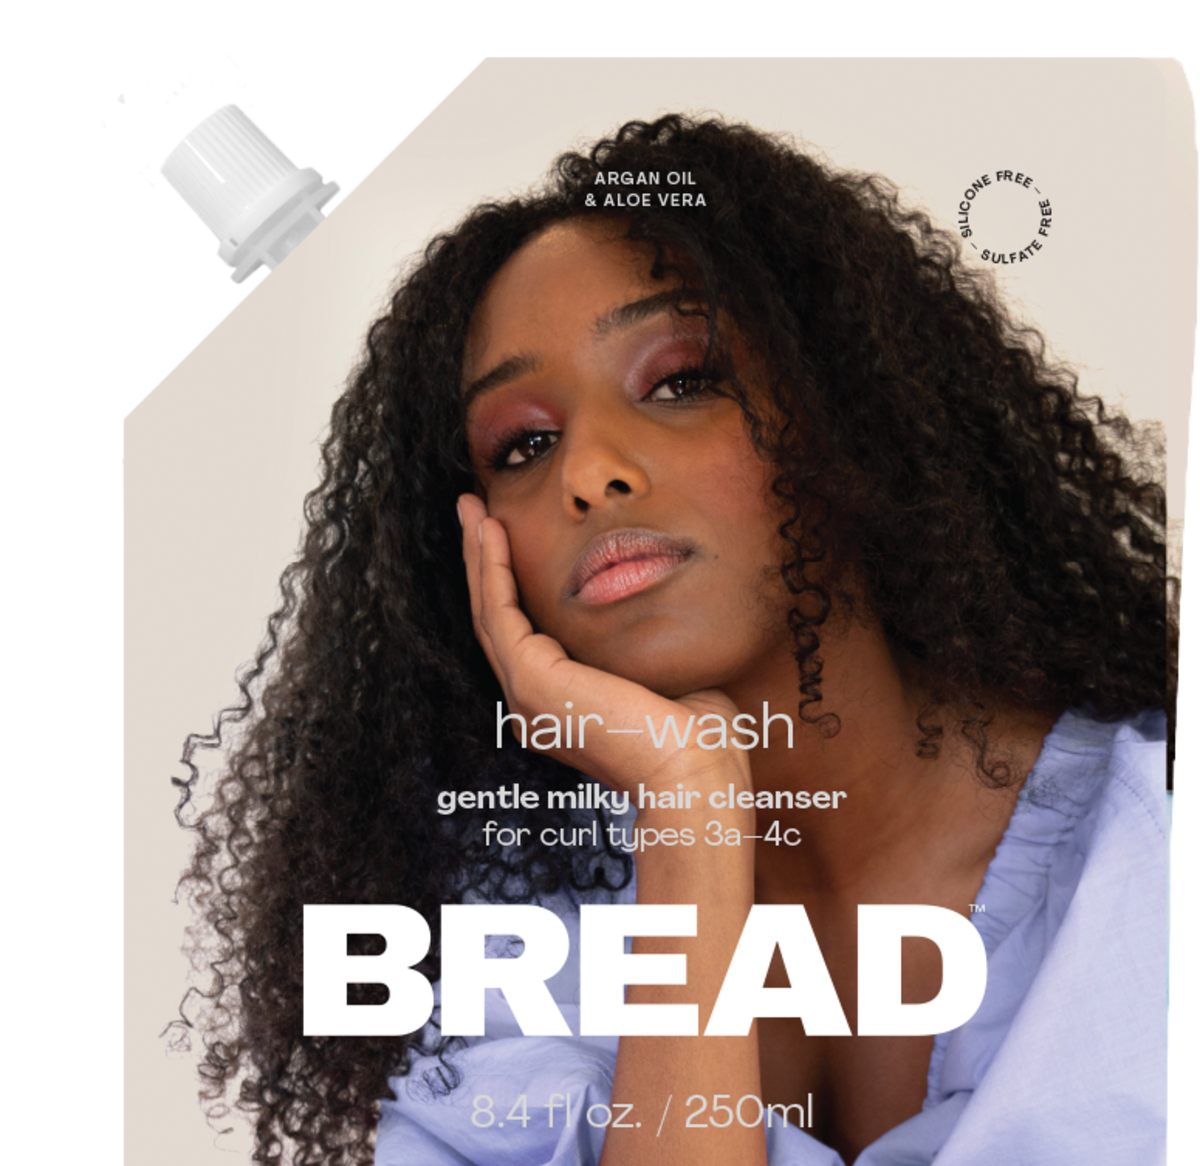 BREAD Hair-Wash, $20, available here.